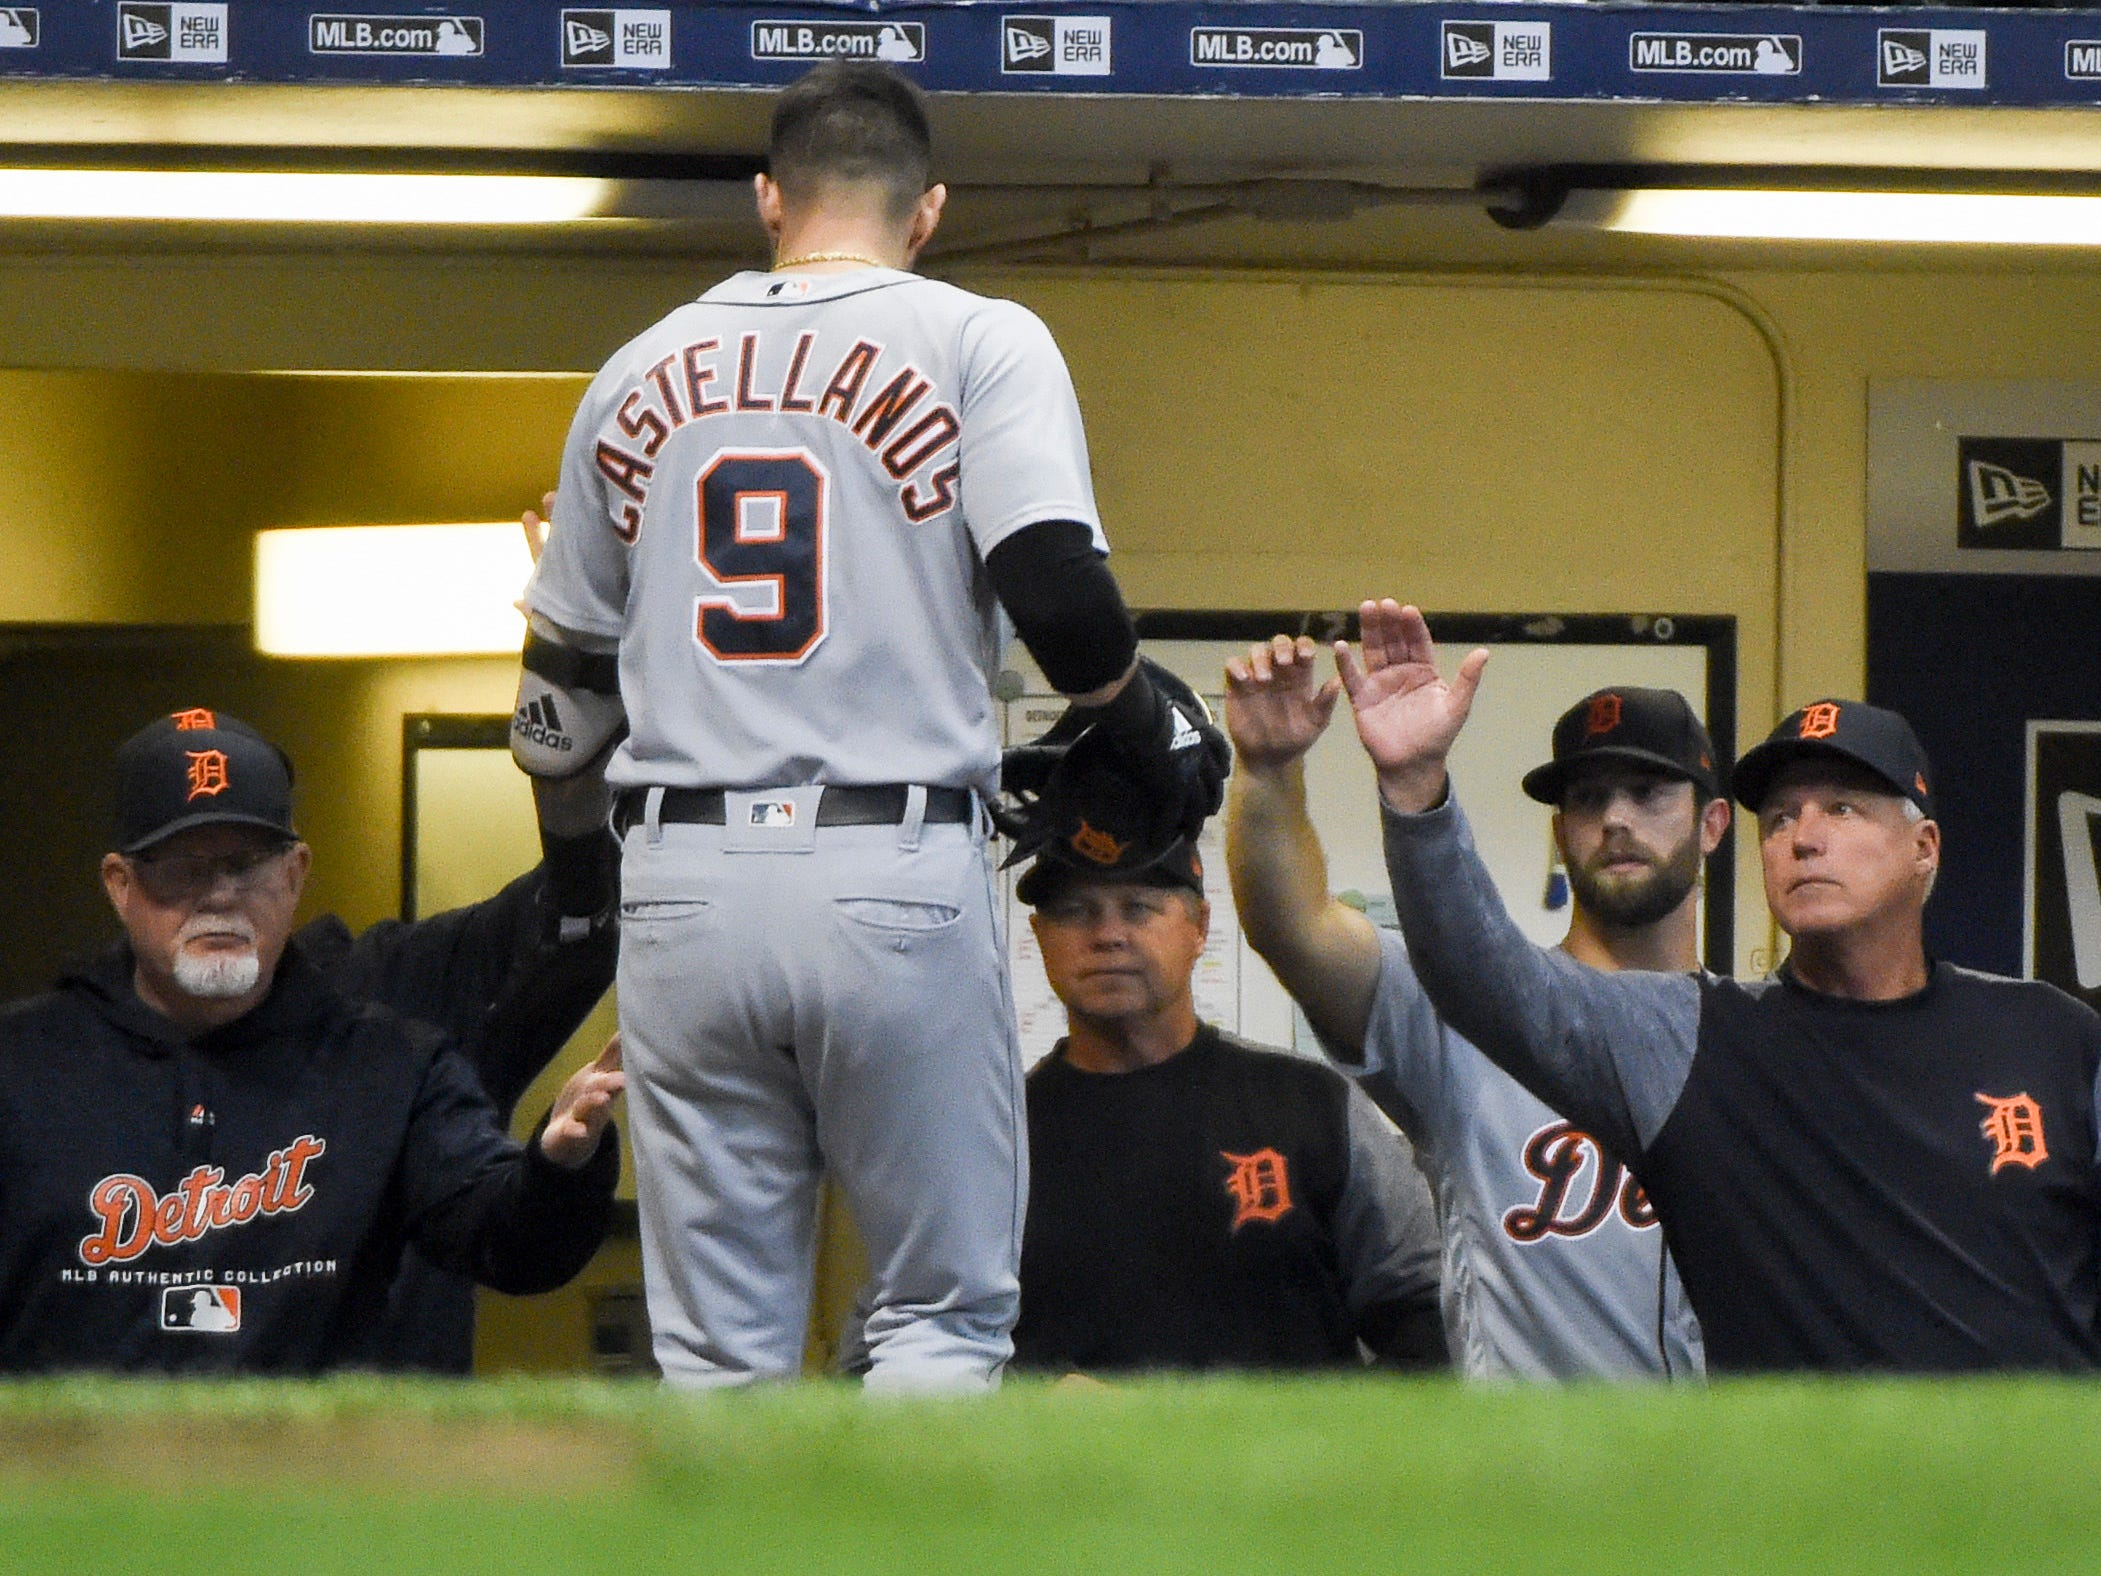 Detroit Tigers right fielder Nicholas Castellanos is greeted by manager Ron Gardenhire, left, after hitting a solo home run in the fifth inning against the Milwaukee Brewers at Miller Park on Sept. 29, 2018 in Milwaukee.